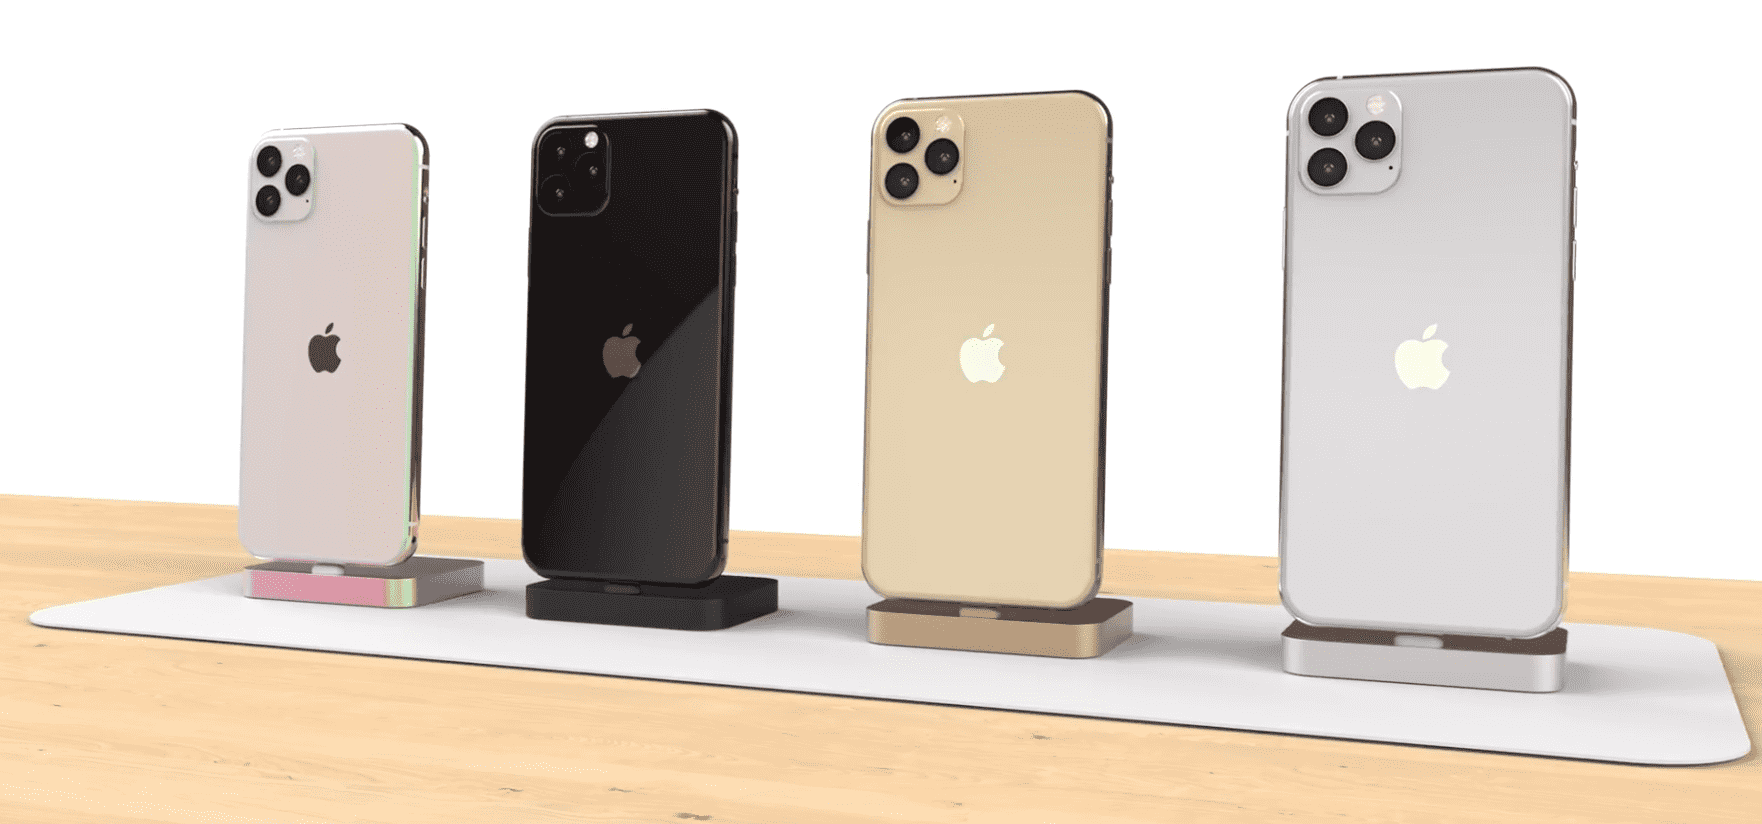 Iphone 11 Pro Rainbow Color Iphone 11 New Green Color Rumors Img 4